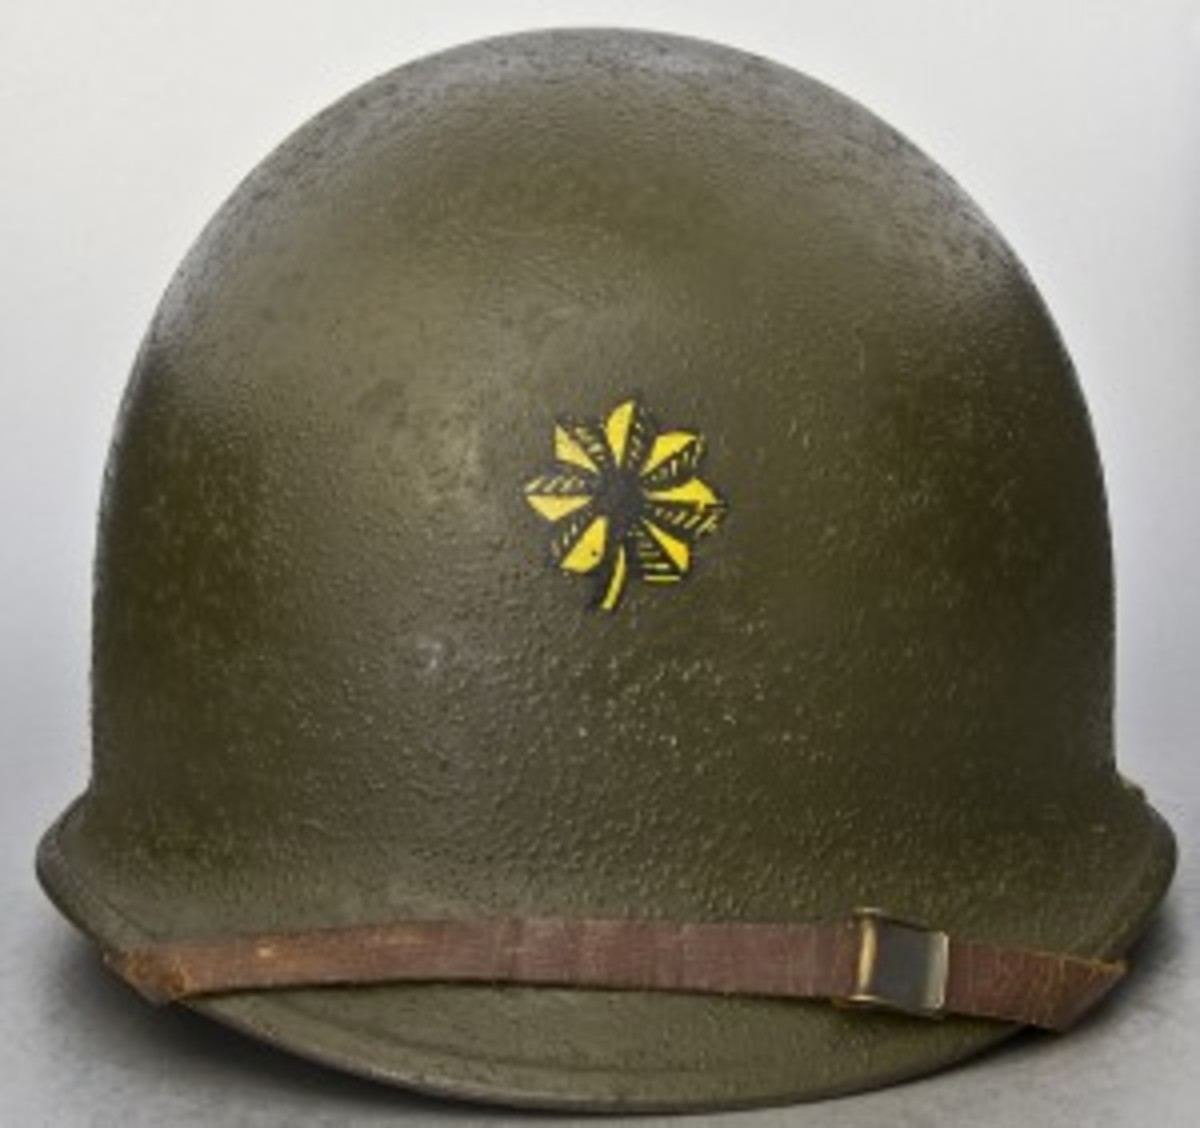 Major Winters wore this helmet after being recalled to service for the Korean War, serving as a regimental training officer of the 364th Infantry Regiment stationed at Fort Dix, New Jersey, from 1951-1952. The helmet is a late-WWII type with hinged chinstrap loops and a latter production heat lot number of 1189C (from around early 1945).